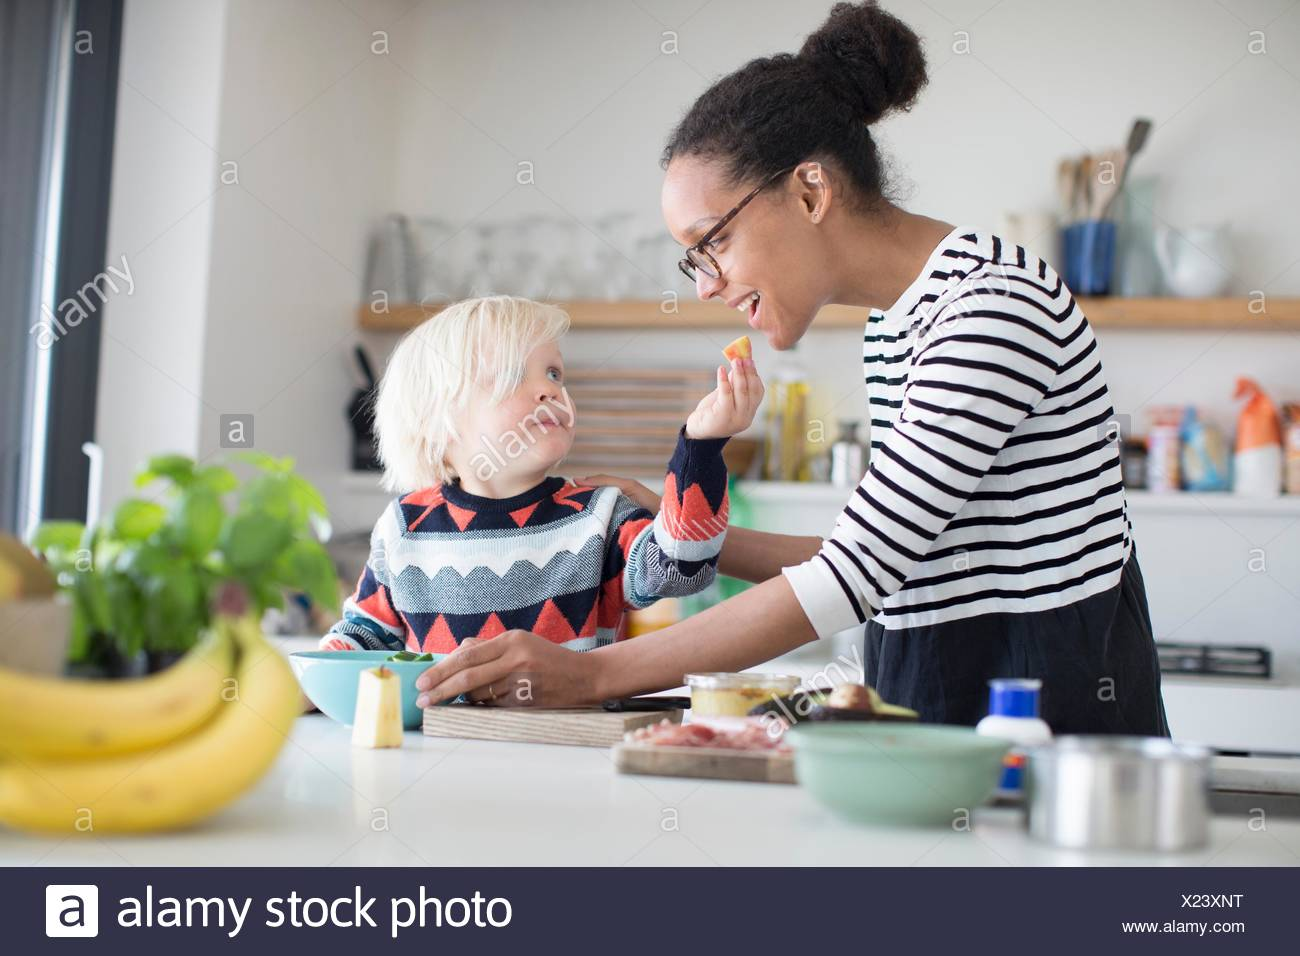 Son feeding mother food in kitchen - Stock Image